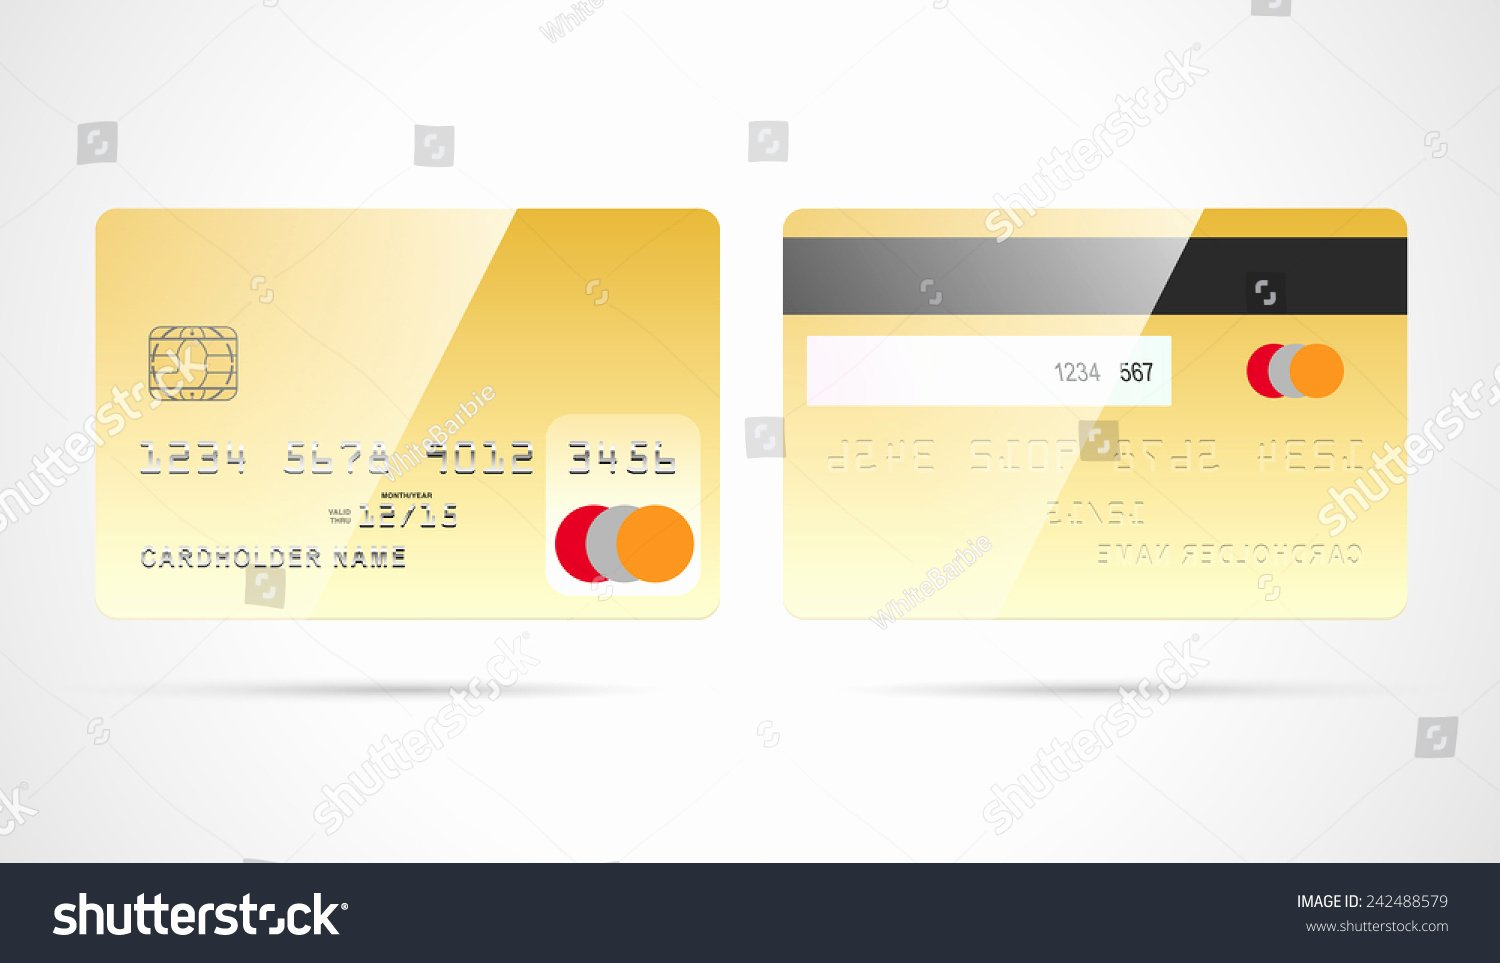 Blank Credit Card Template Luxury Blank Golden Debit Credit Card Template with Chip and